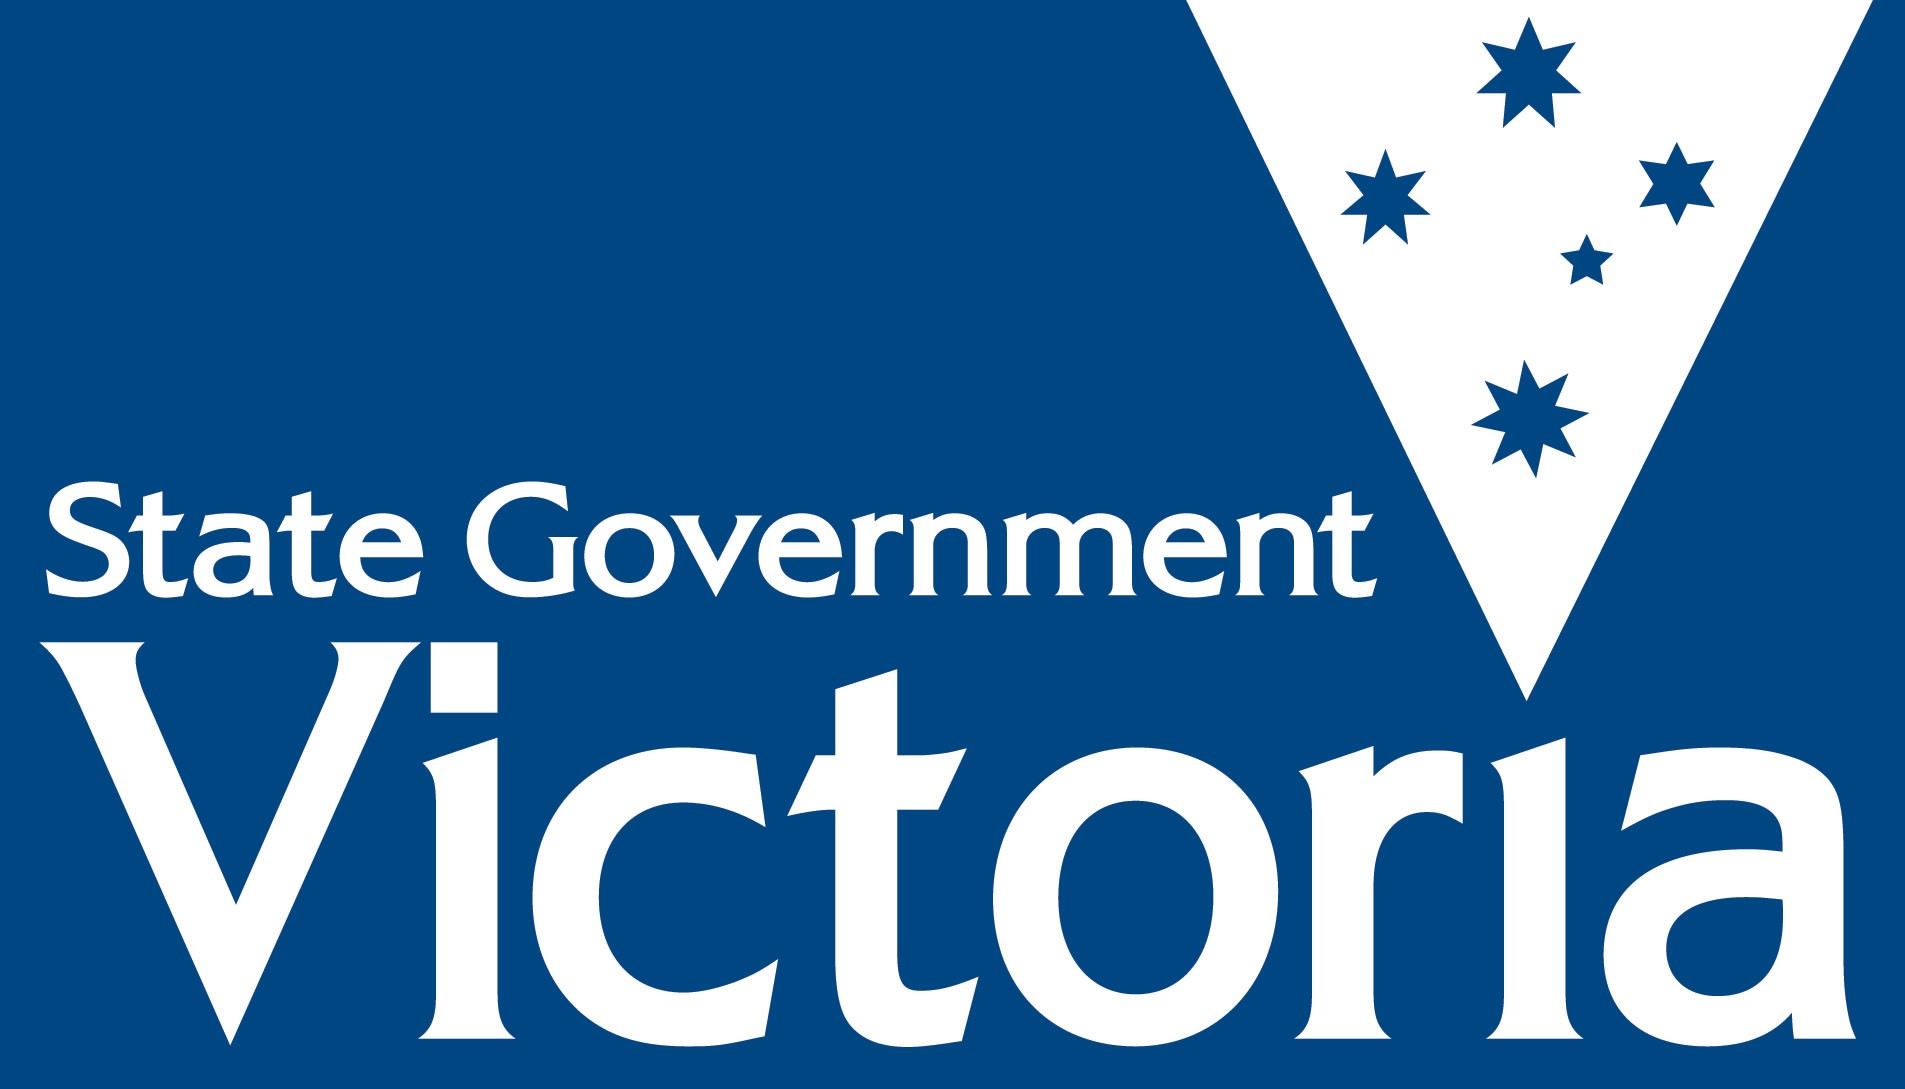 Victorian State Government Crest1